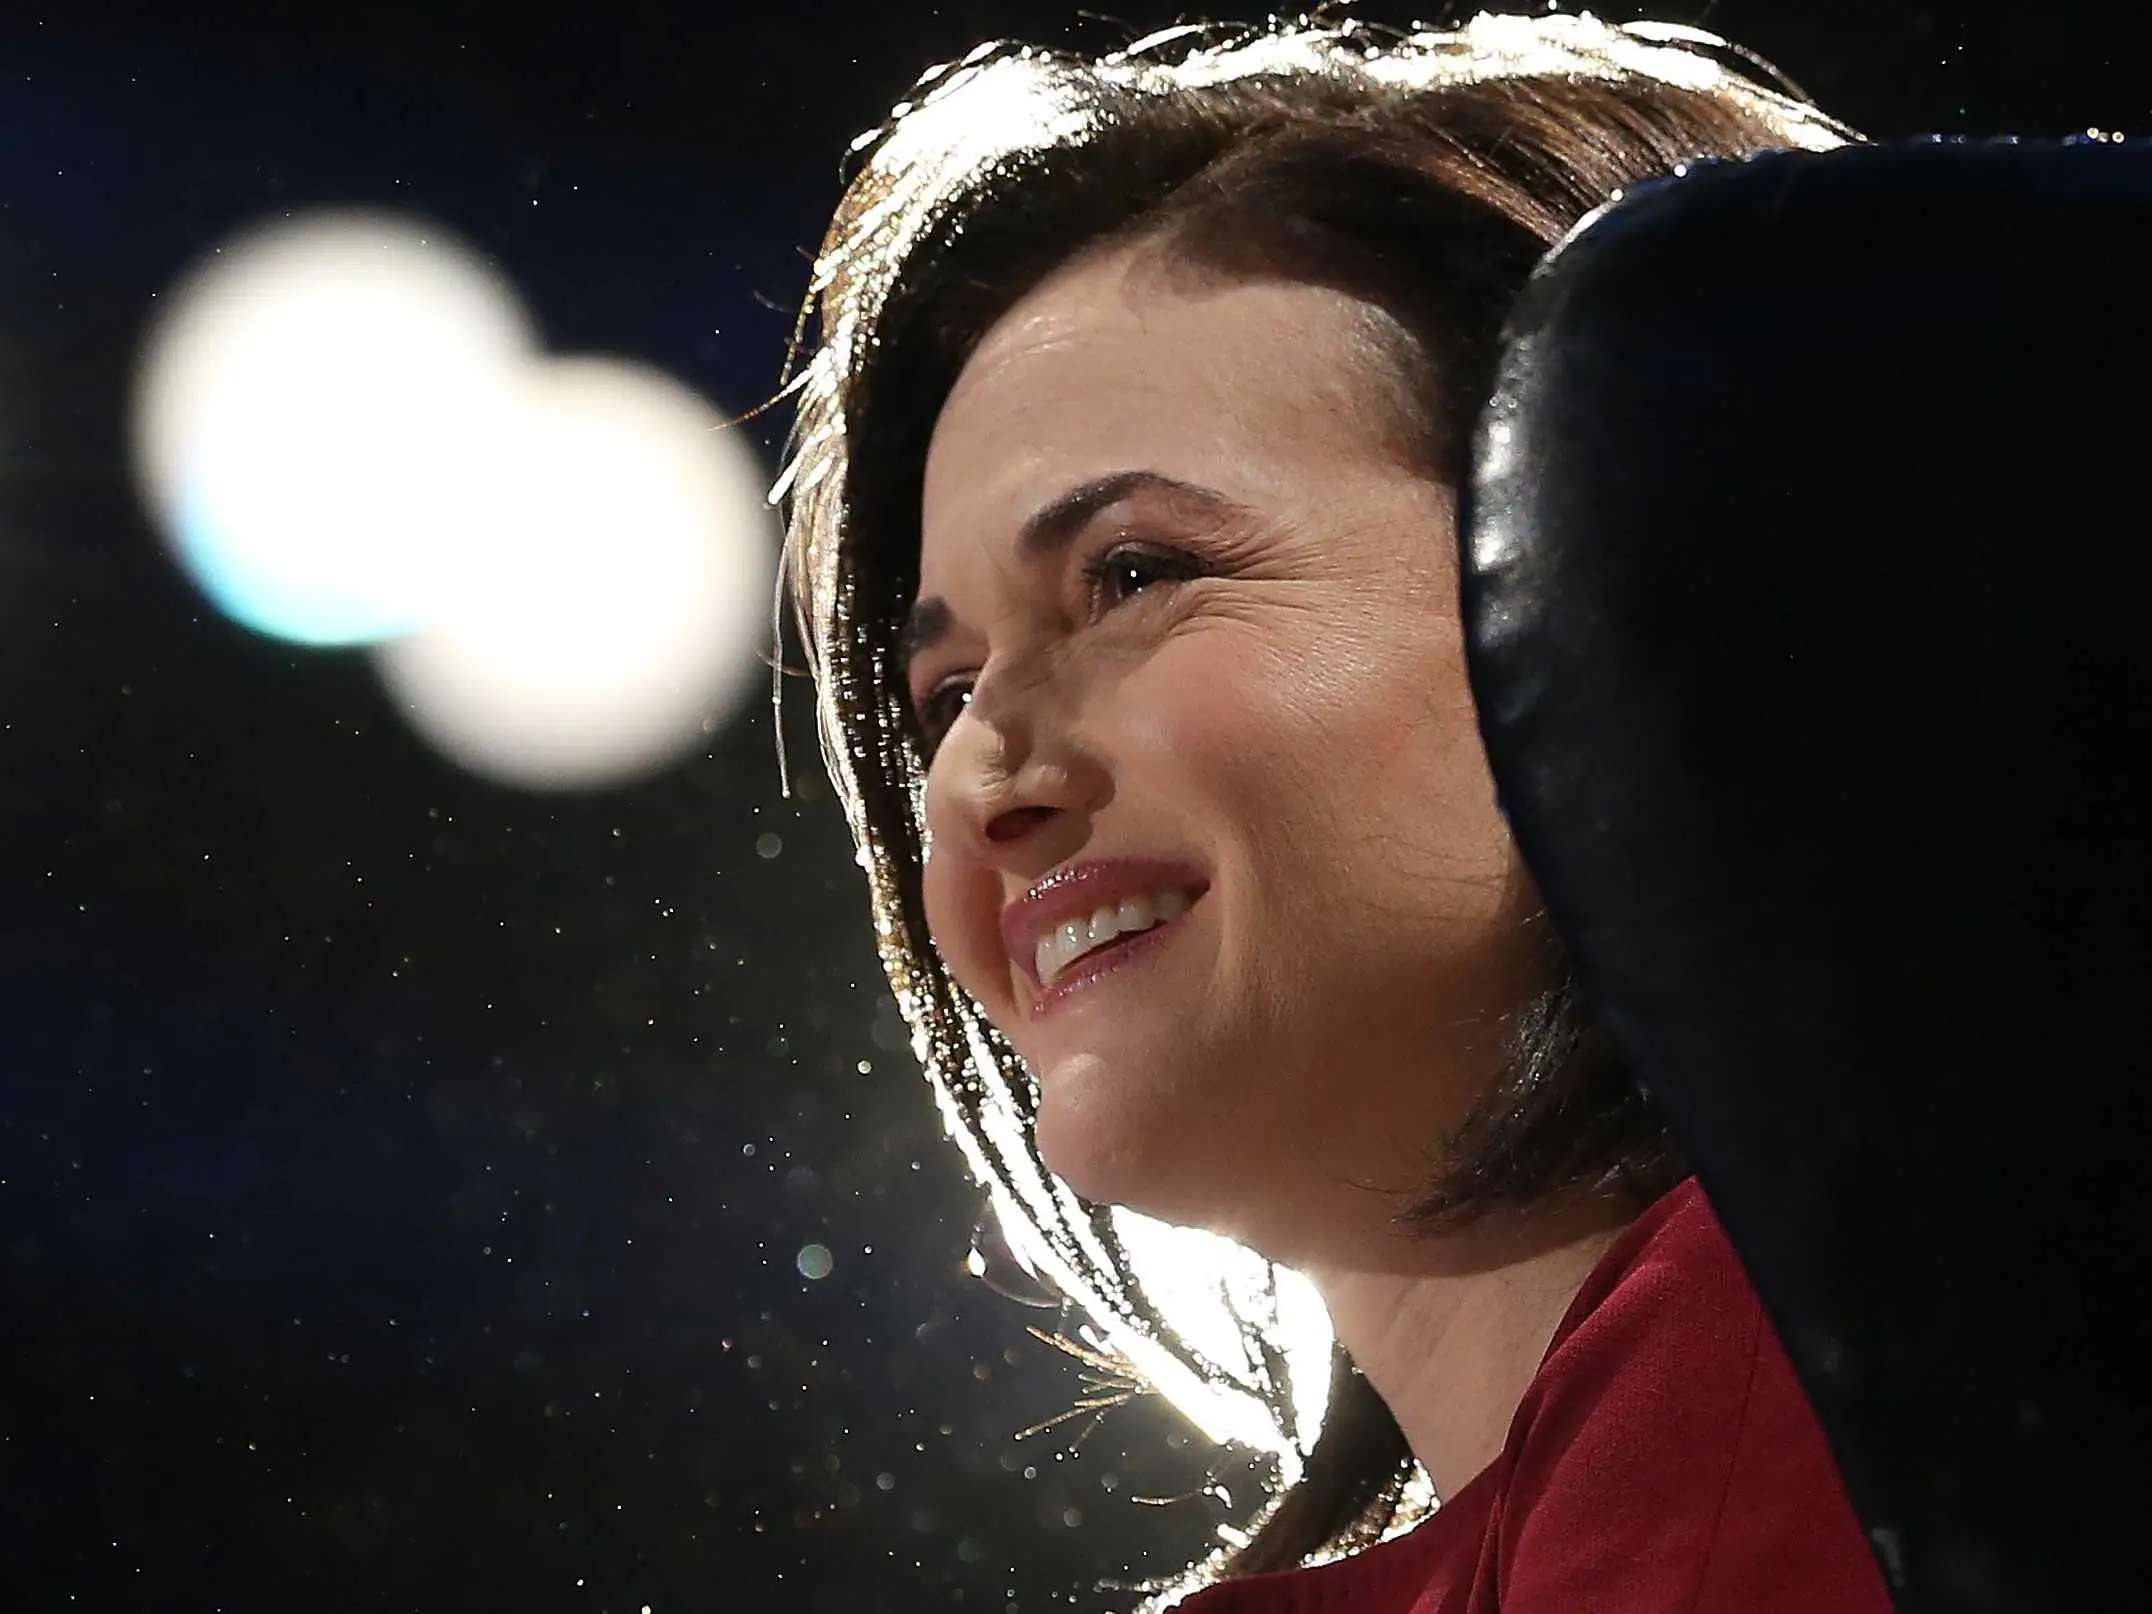 Facebook COO Sheryl Sandberg sticks to a strict agenda.